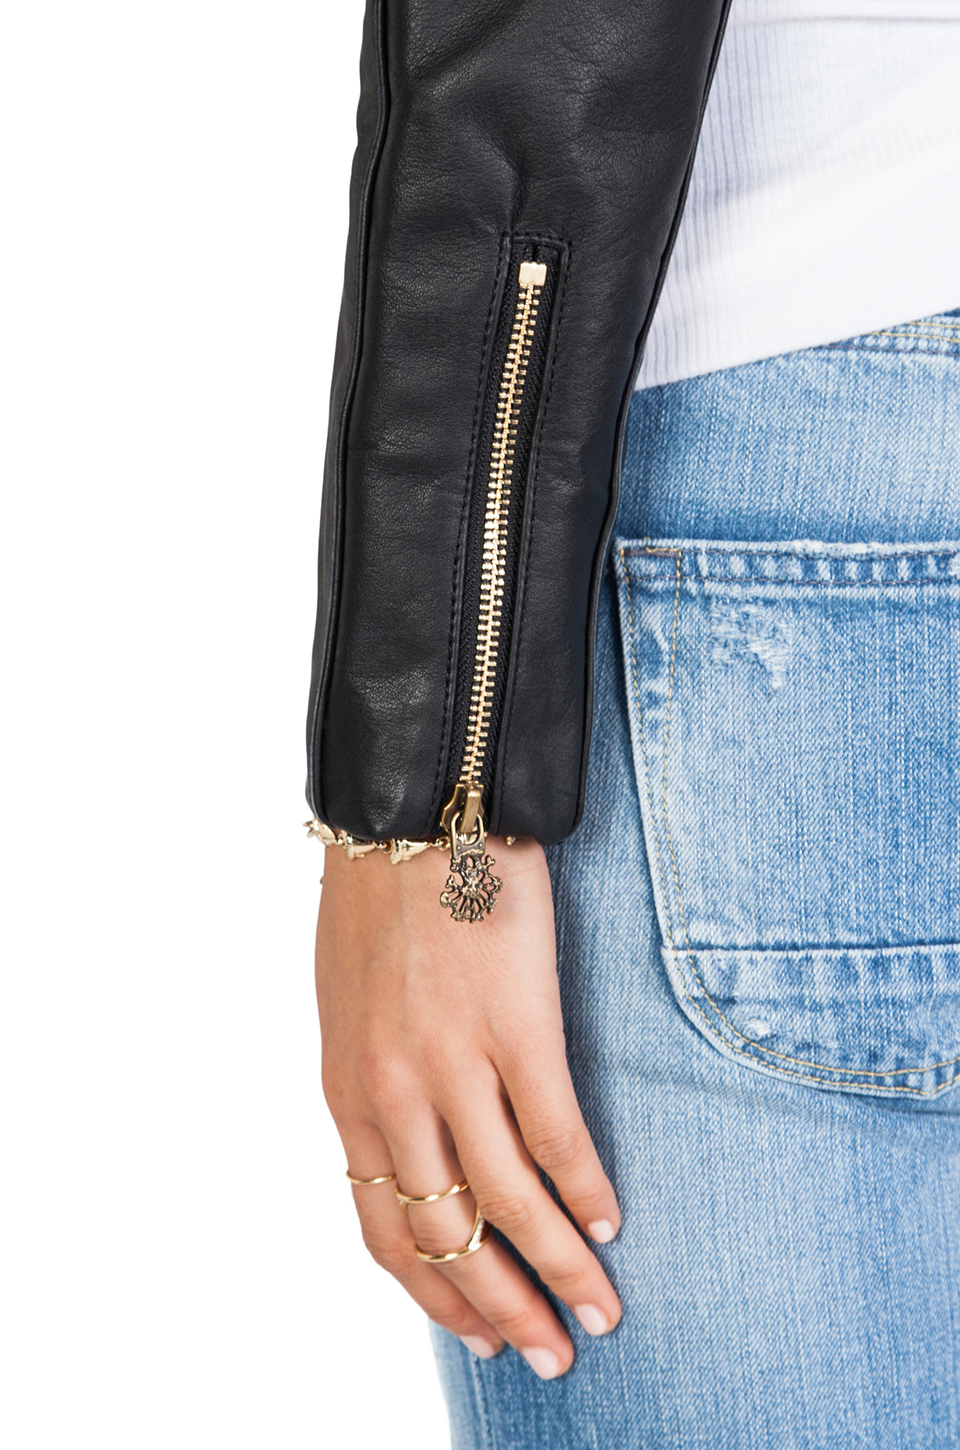 Maison Scotch Denim with Leather Sleeve Jacket in Med Blue